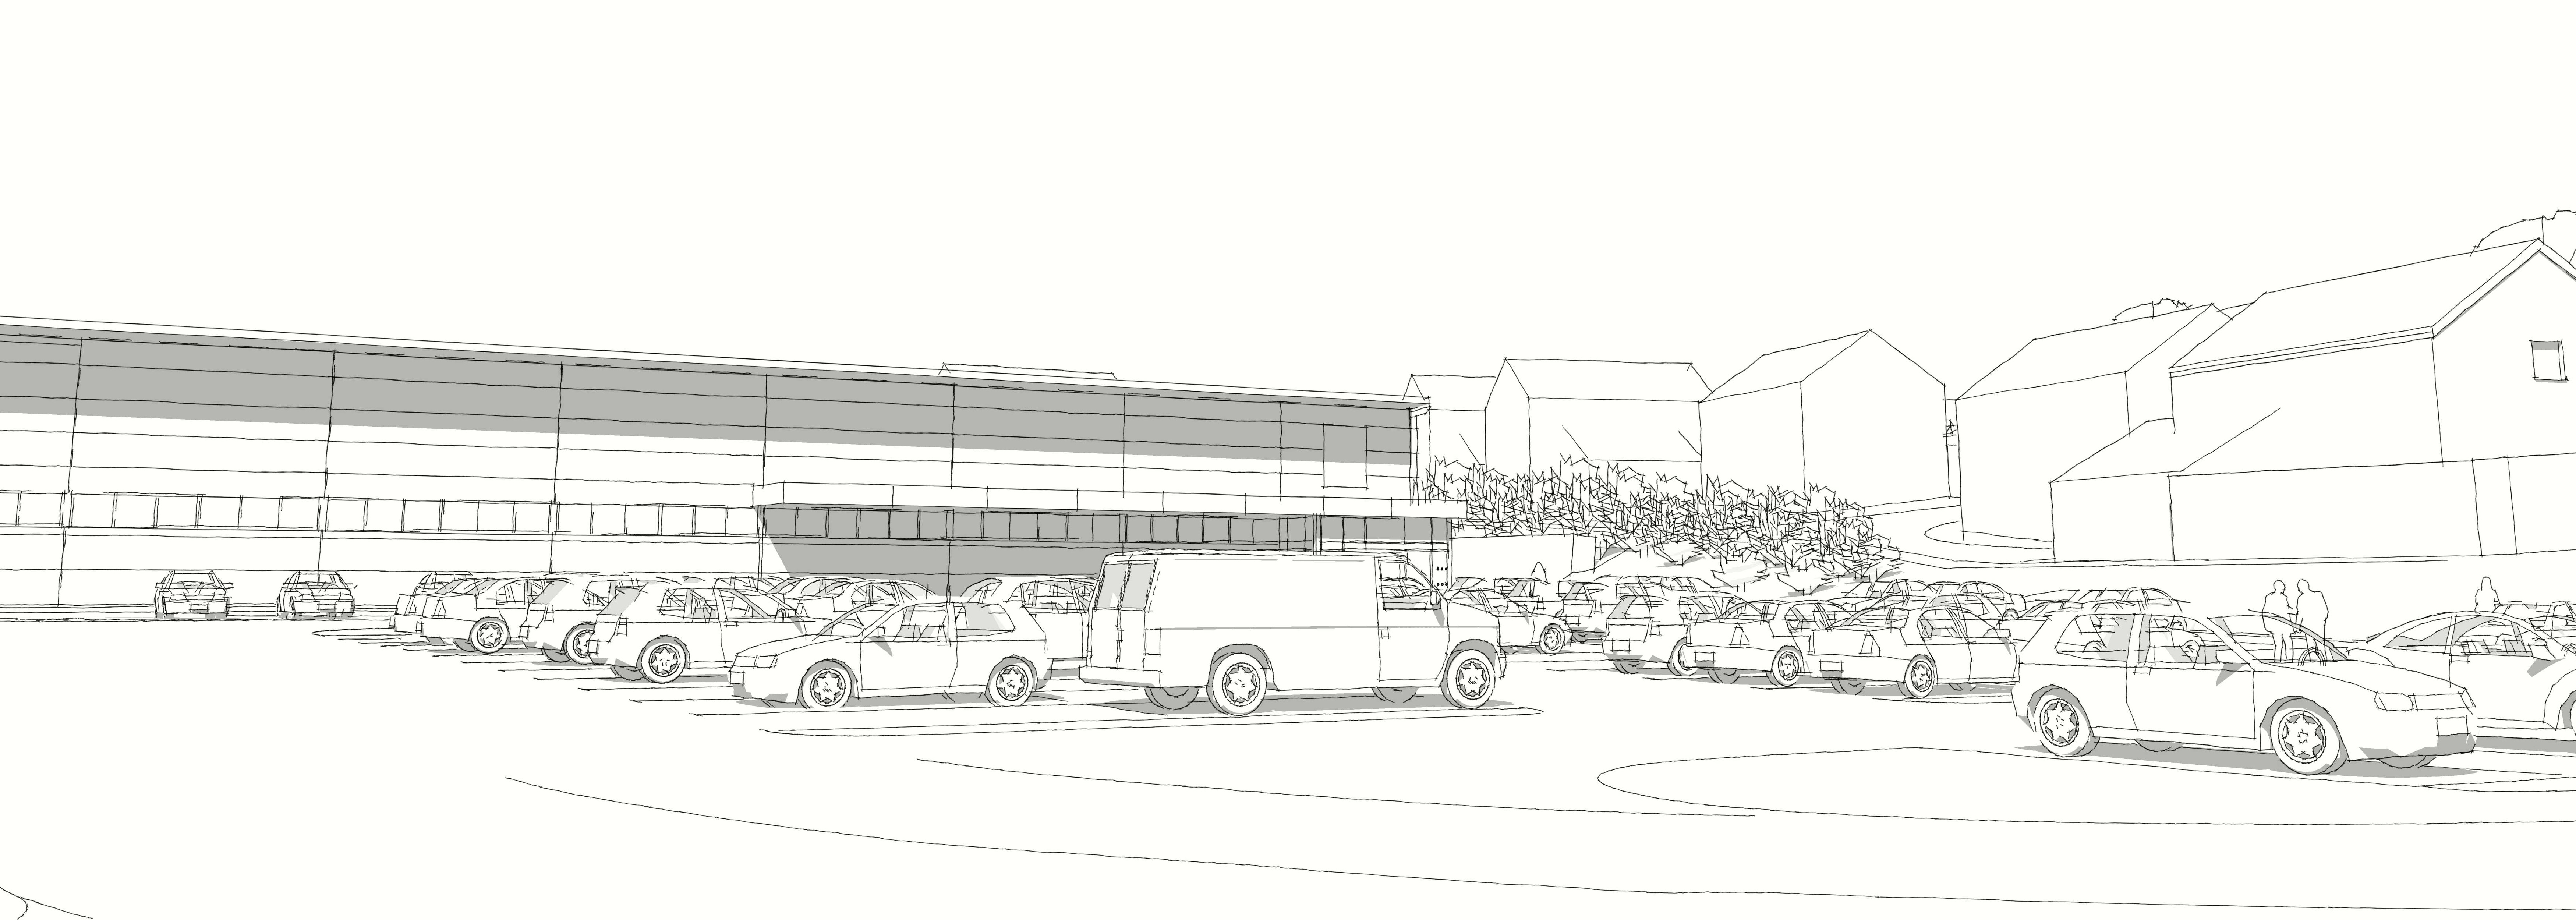 Indicative view of new ALDI store and rear of new housing